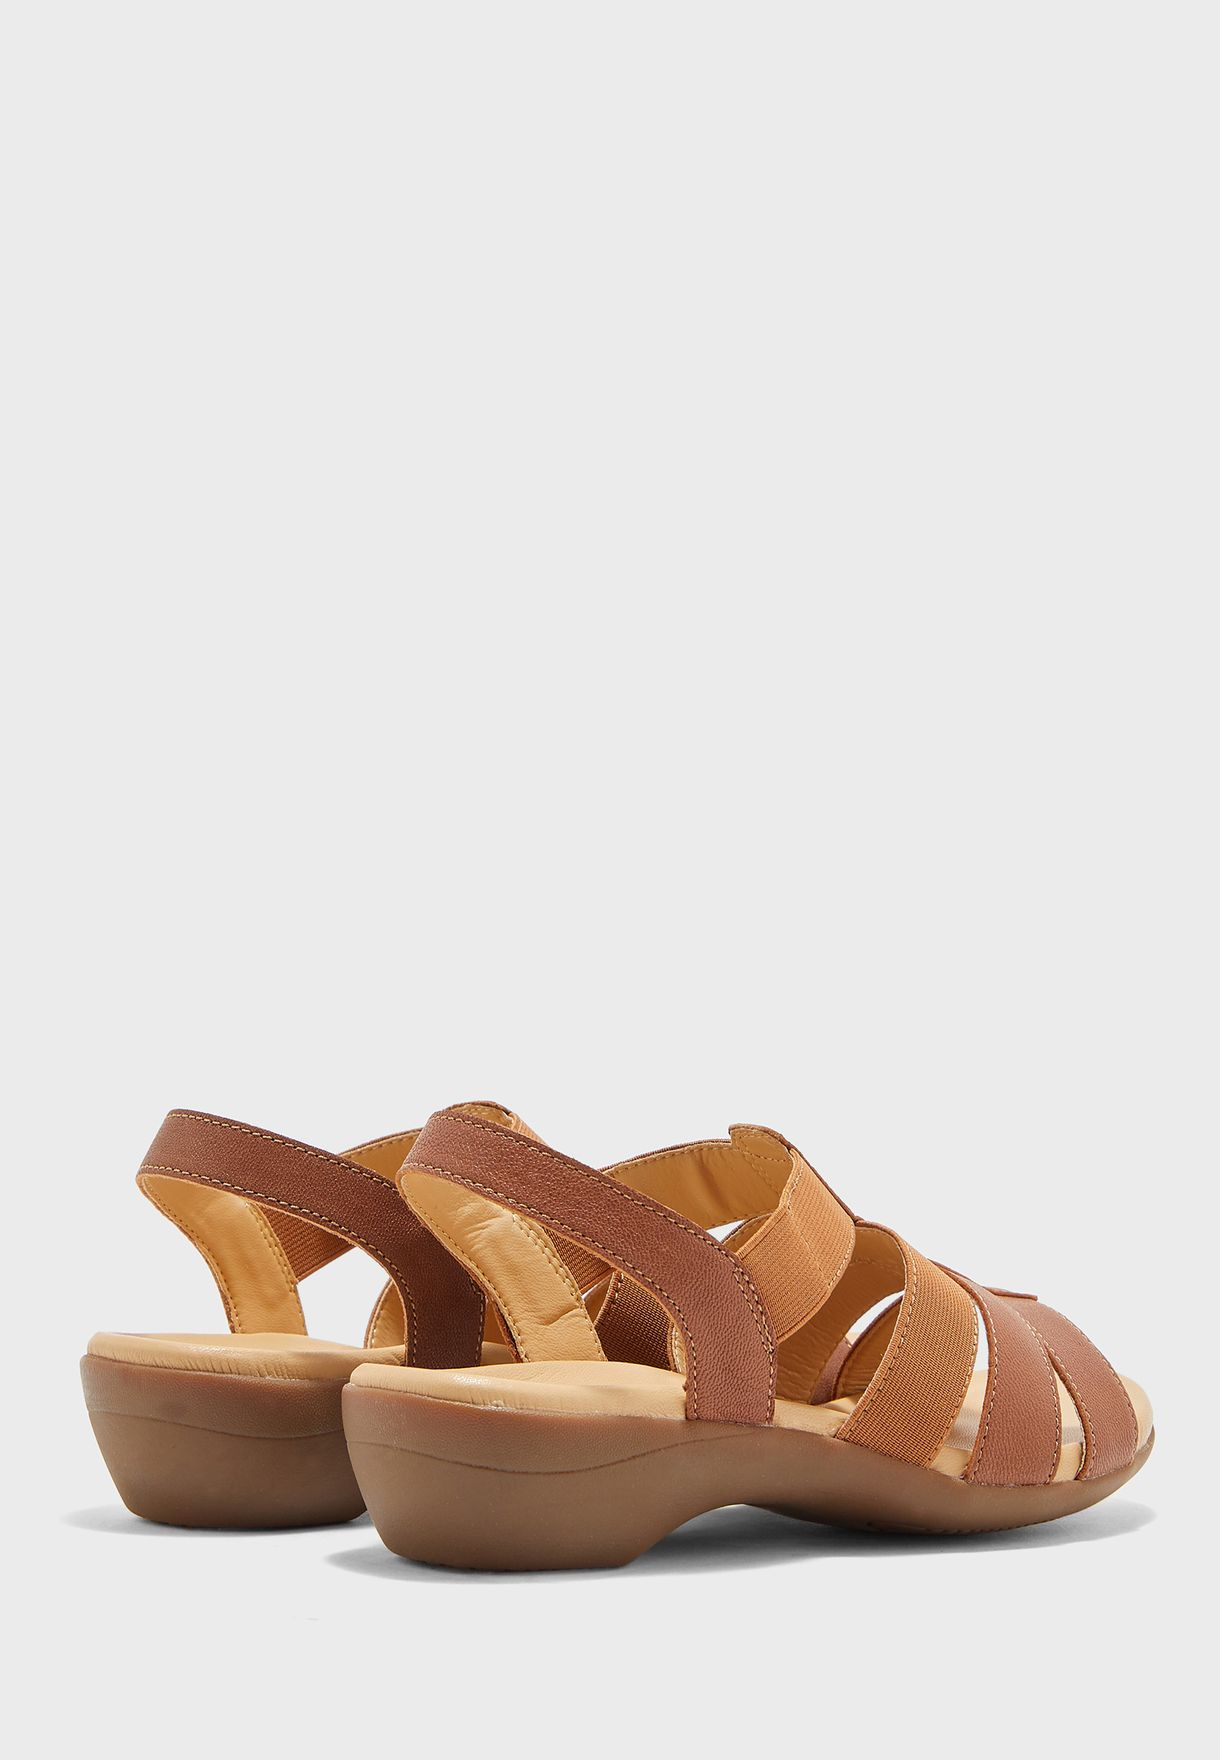 Le Confort Multi Strap Sandal-brown - Brand Shoes